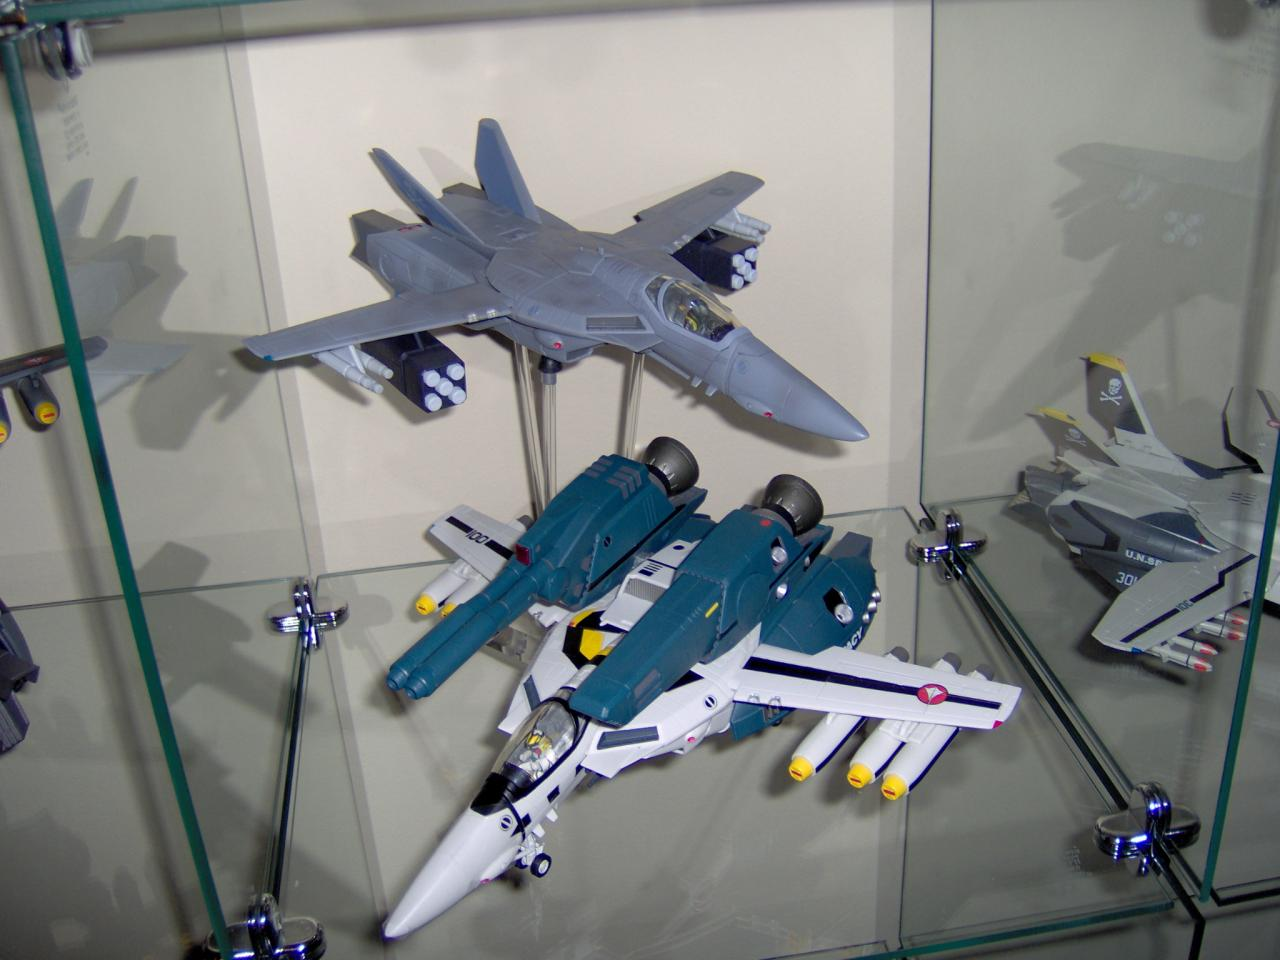 Yamato's First Limited Edition Valkyrie Fighter: VF-1A L